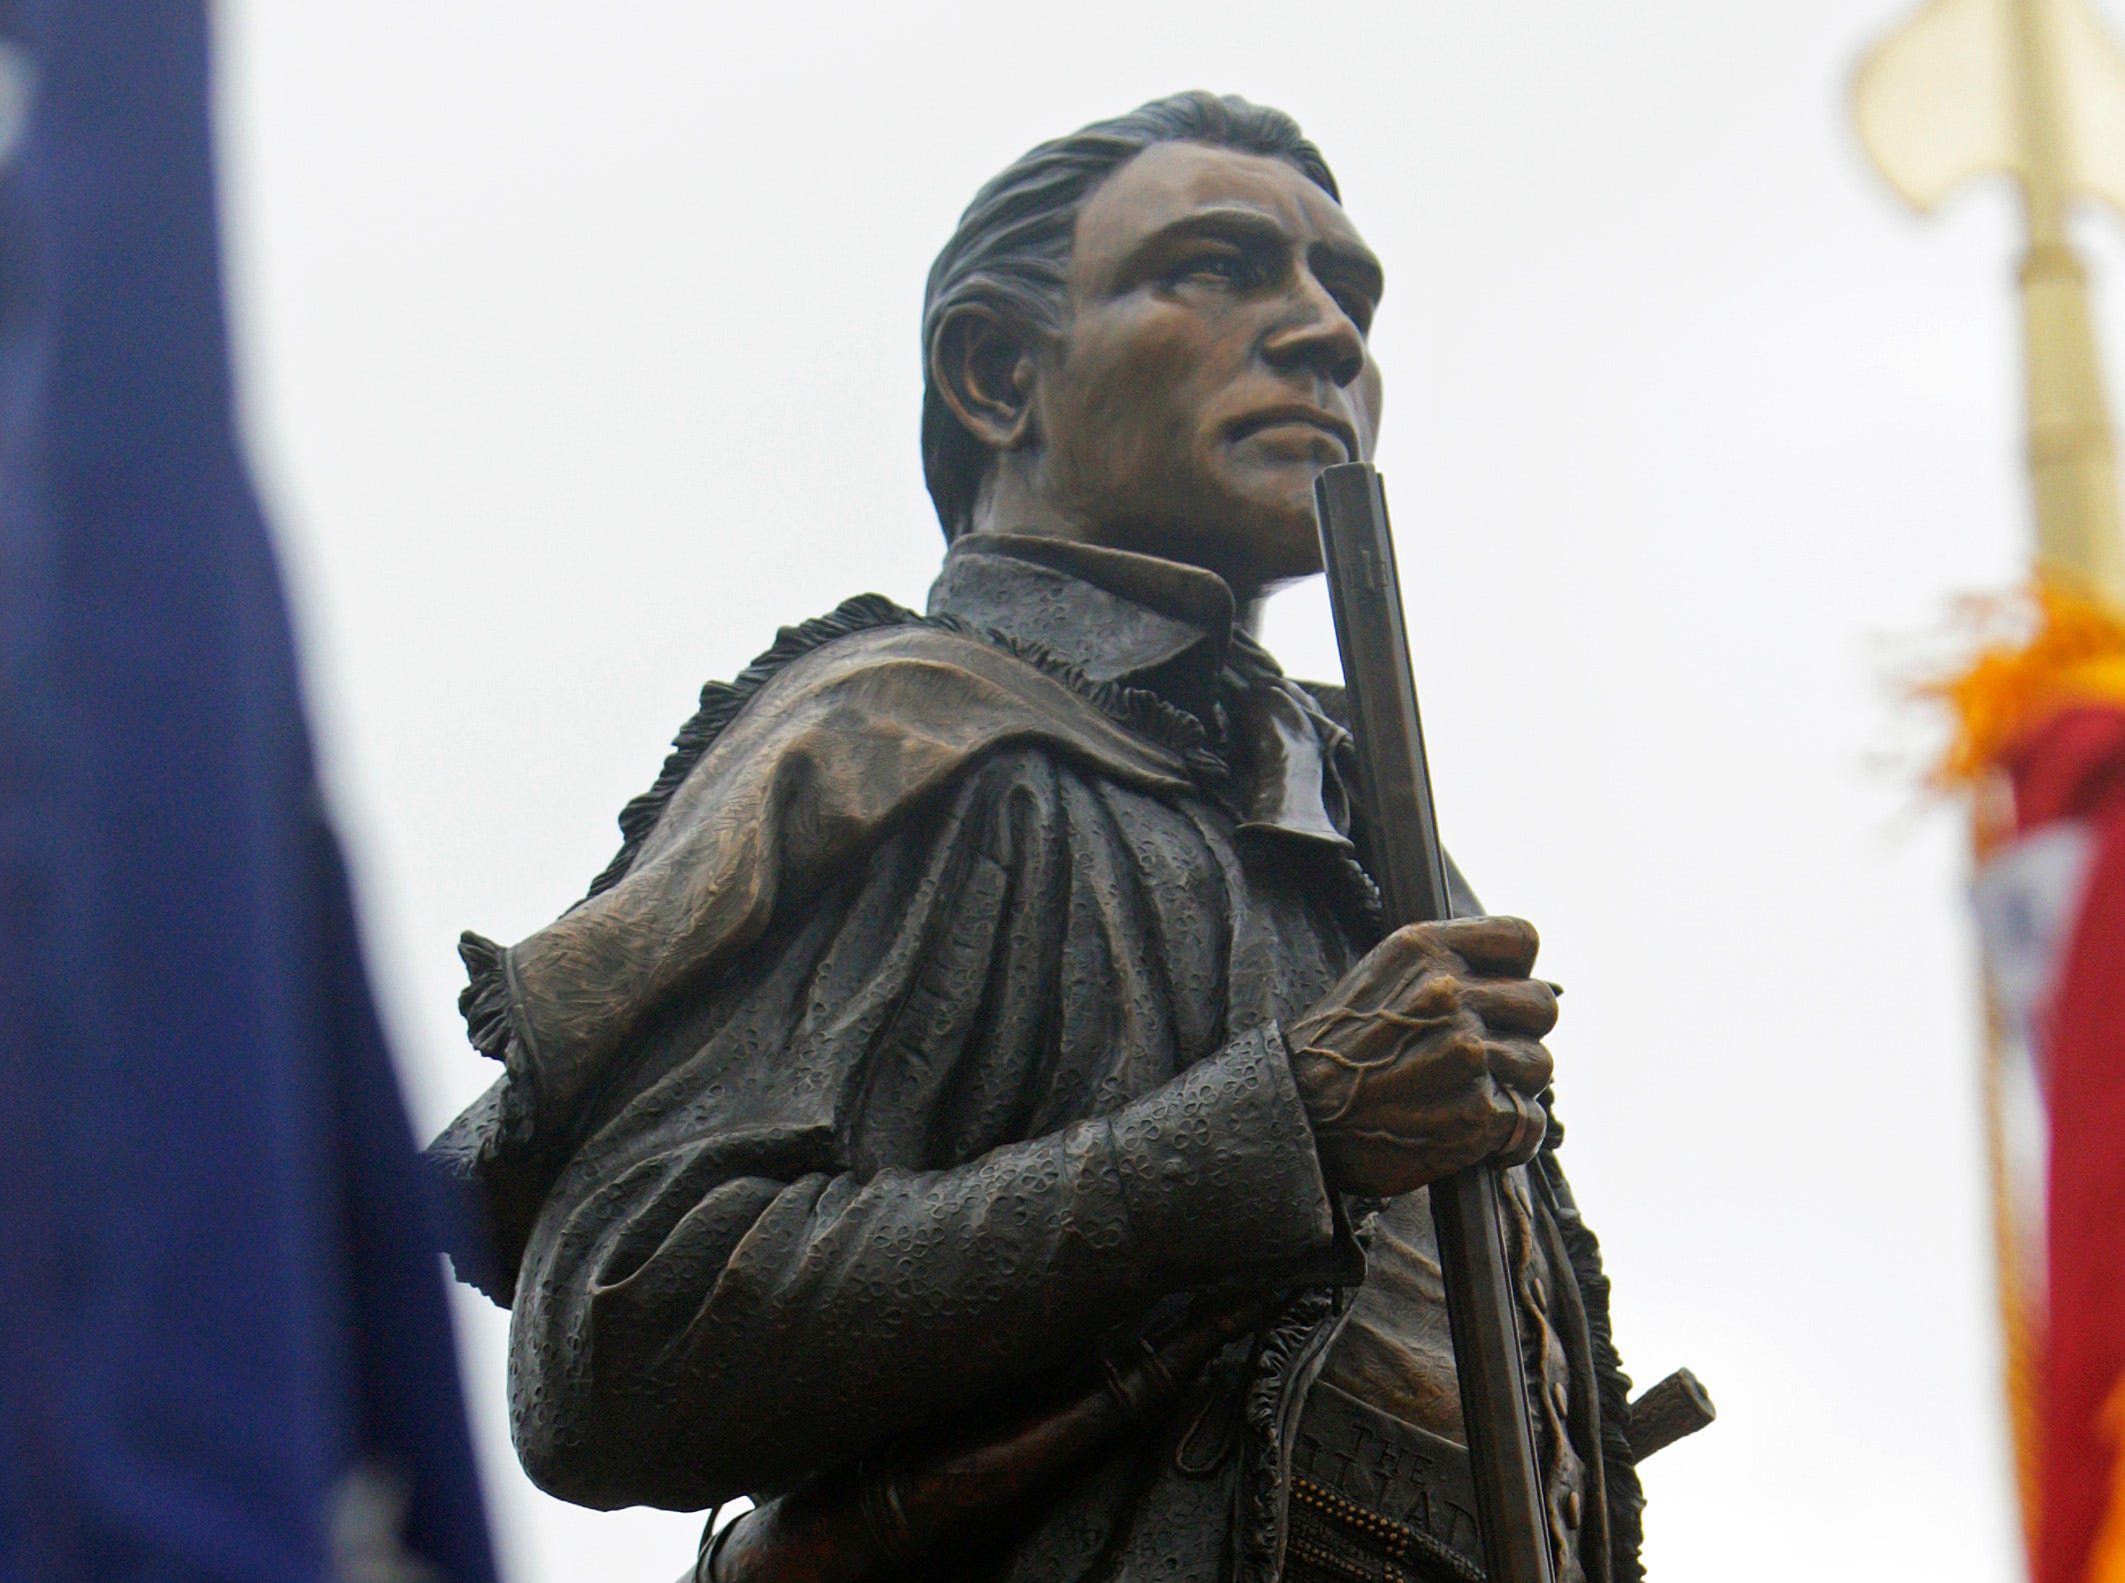 The Sam Houston statue stands between flags during an unveiling Saturday, March 19, 2016, in Maryville, Tenn.